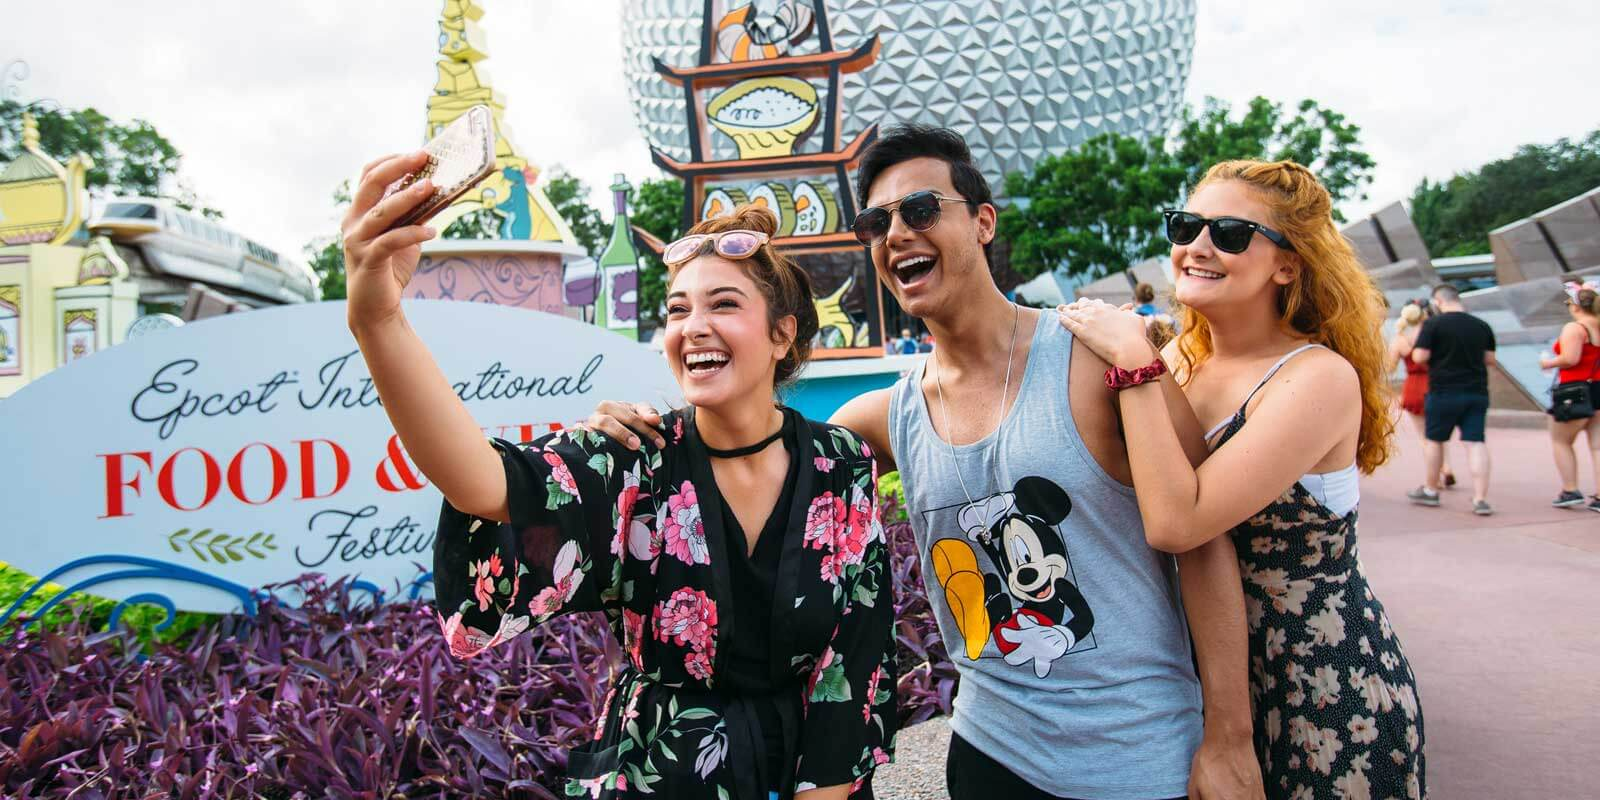 A group of 3 friends stop to take a selfie at the Epcot park entrance during the Epcot Food and Wine Festival.